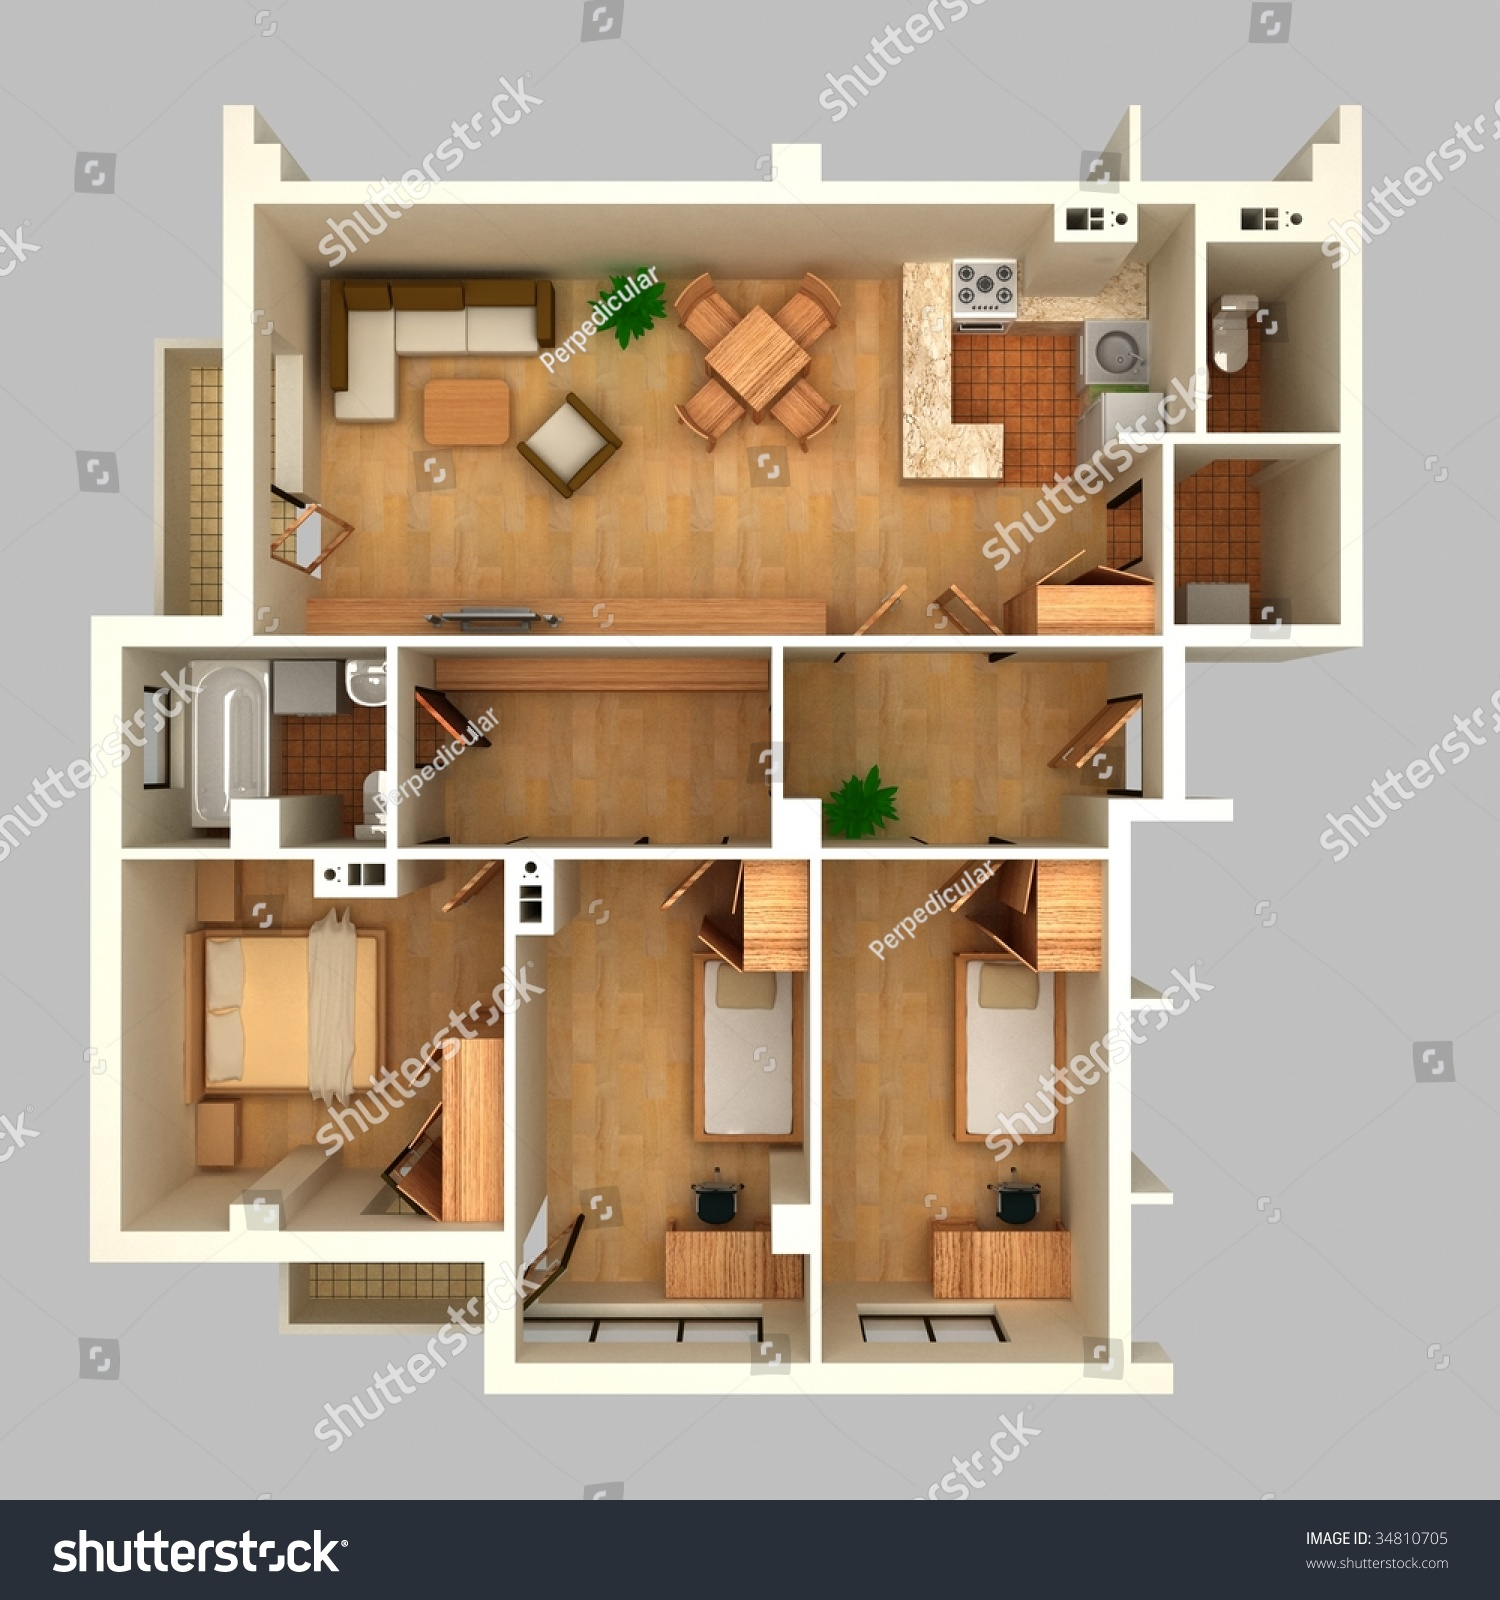 Floor Plan In Perspective View